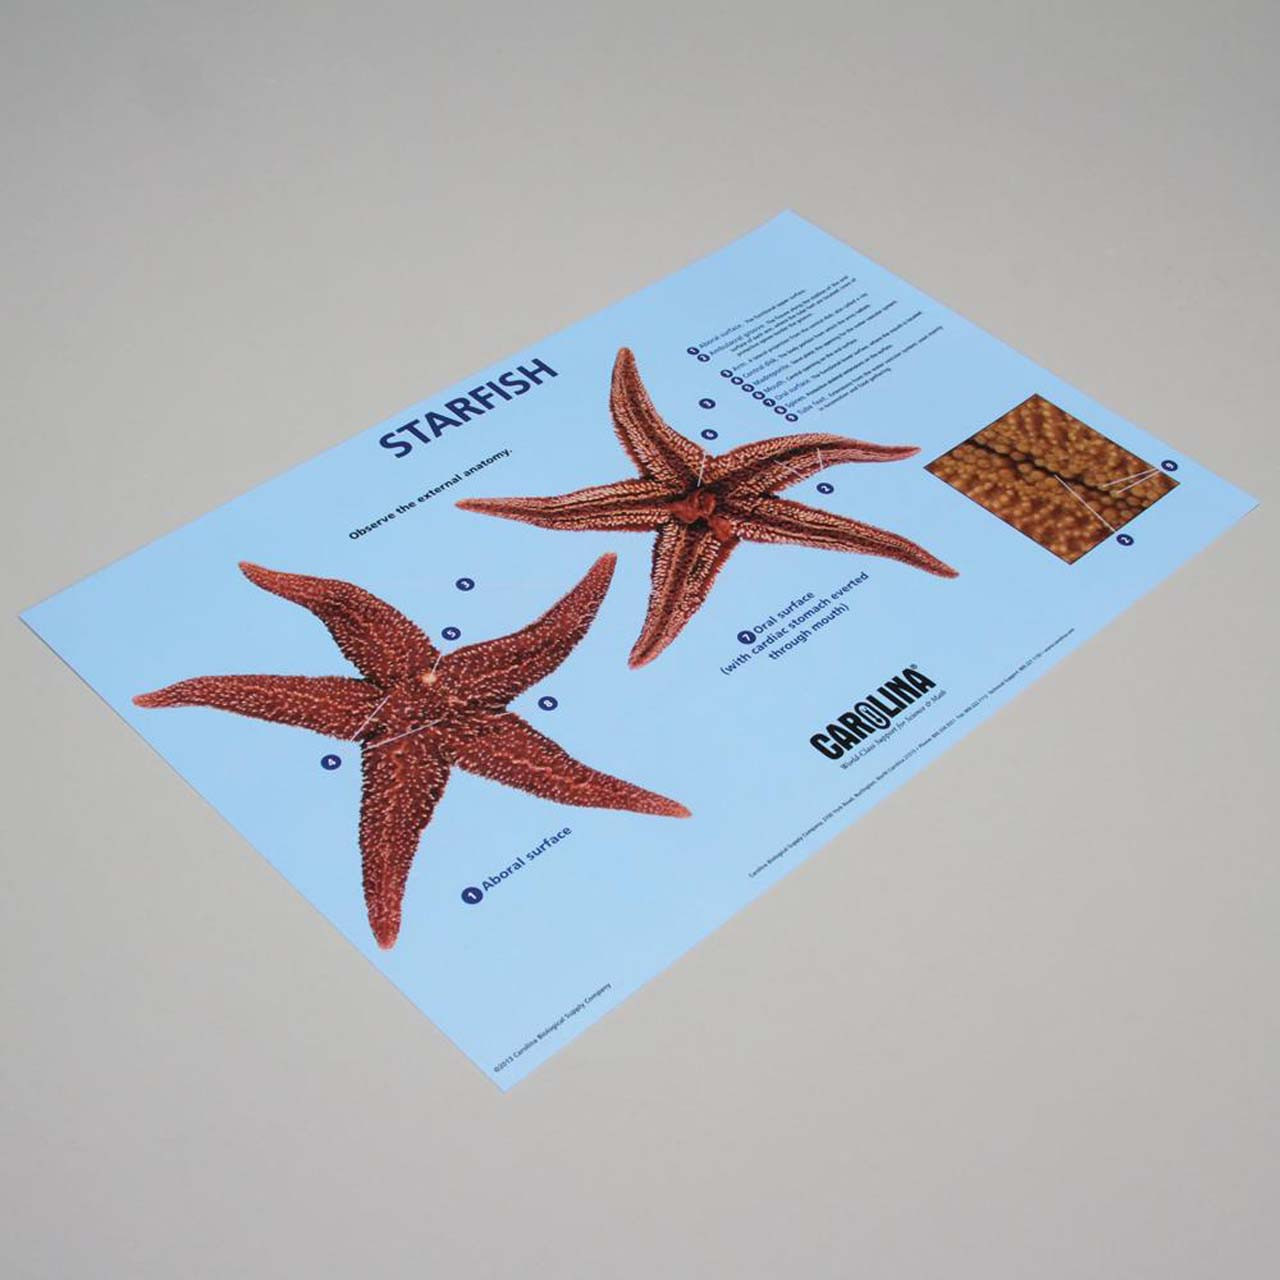 Starfish dissection mat 28cm x 43cm